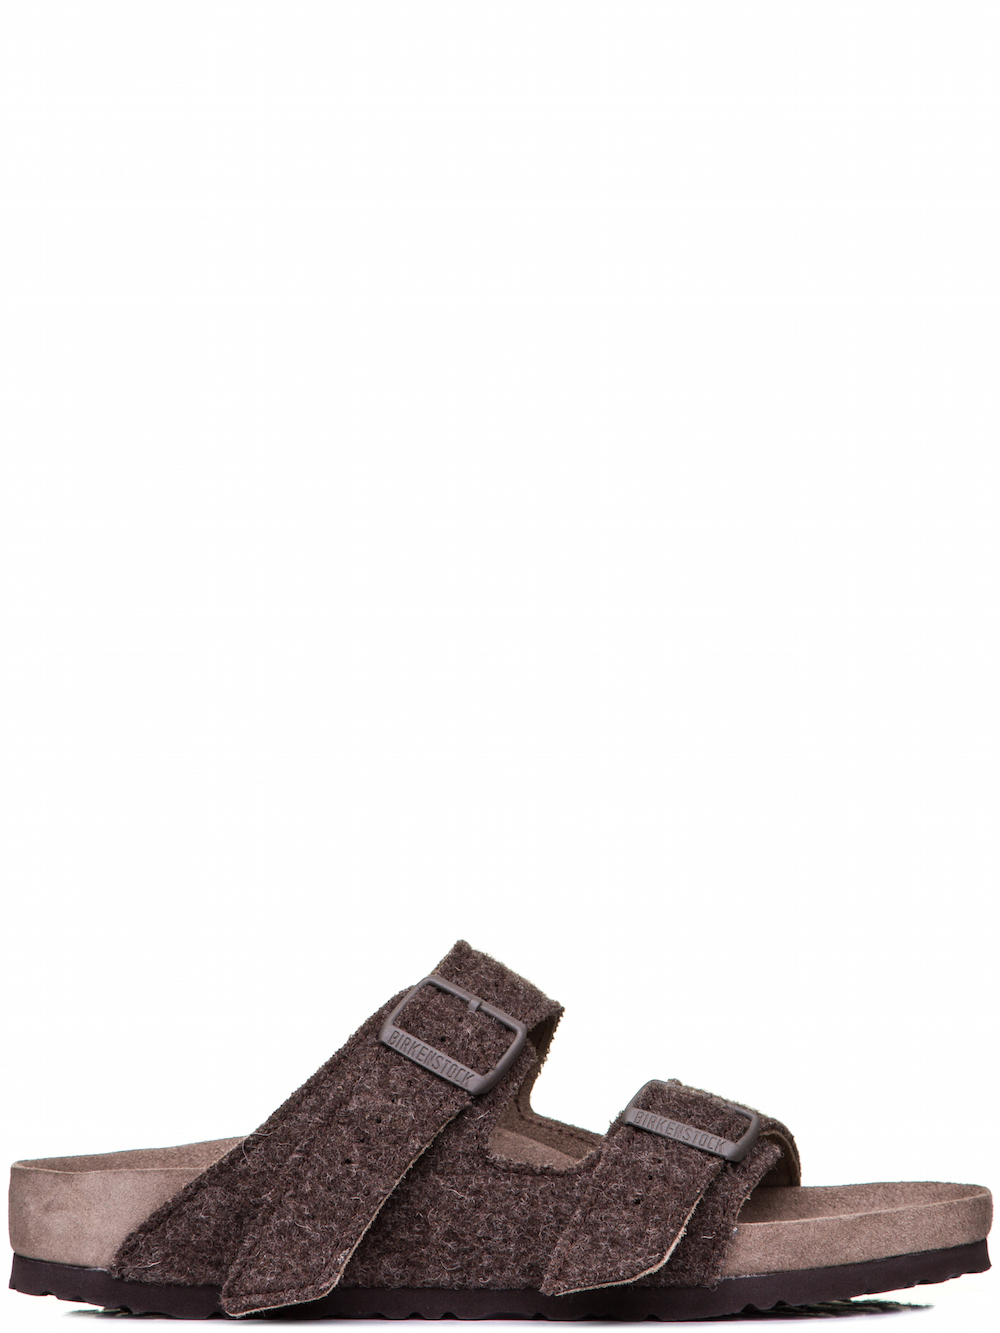 46dd44a41b2 RICK OWENS X BIRKENSTOCK ARIZONA SANDAL IN BROWN